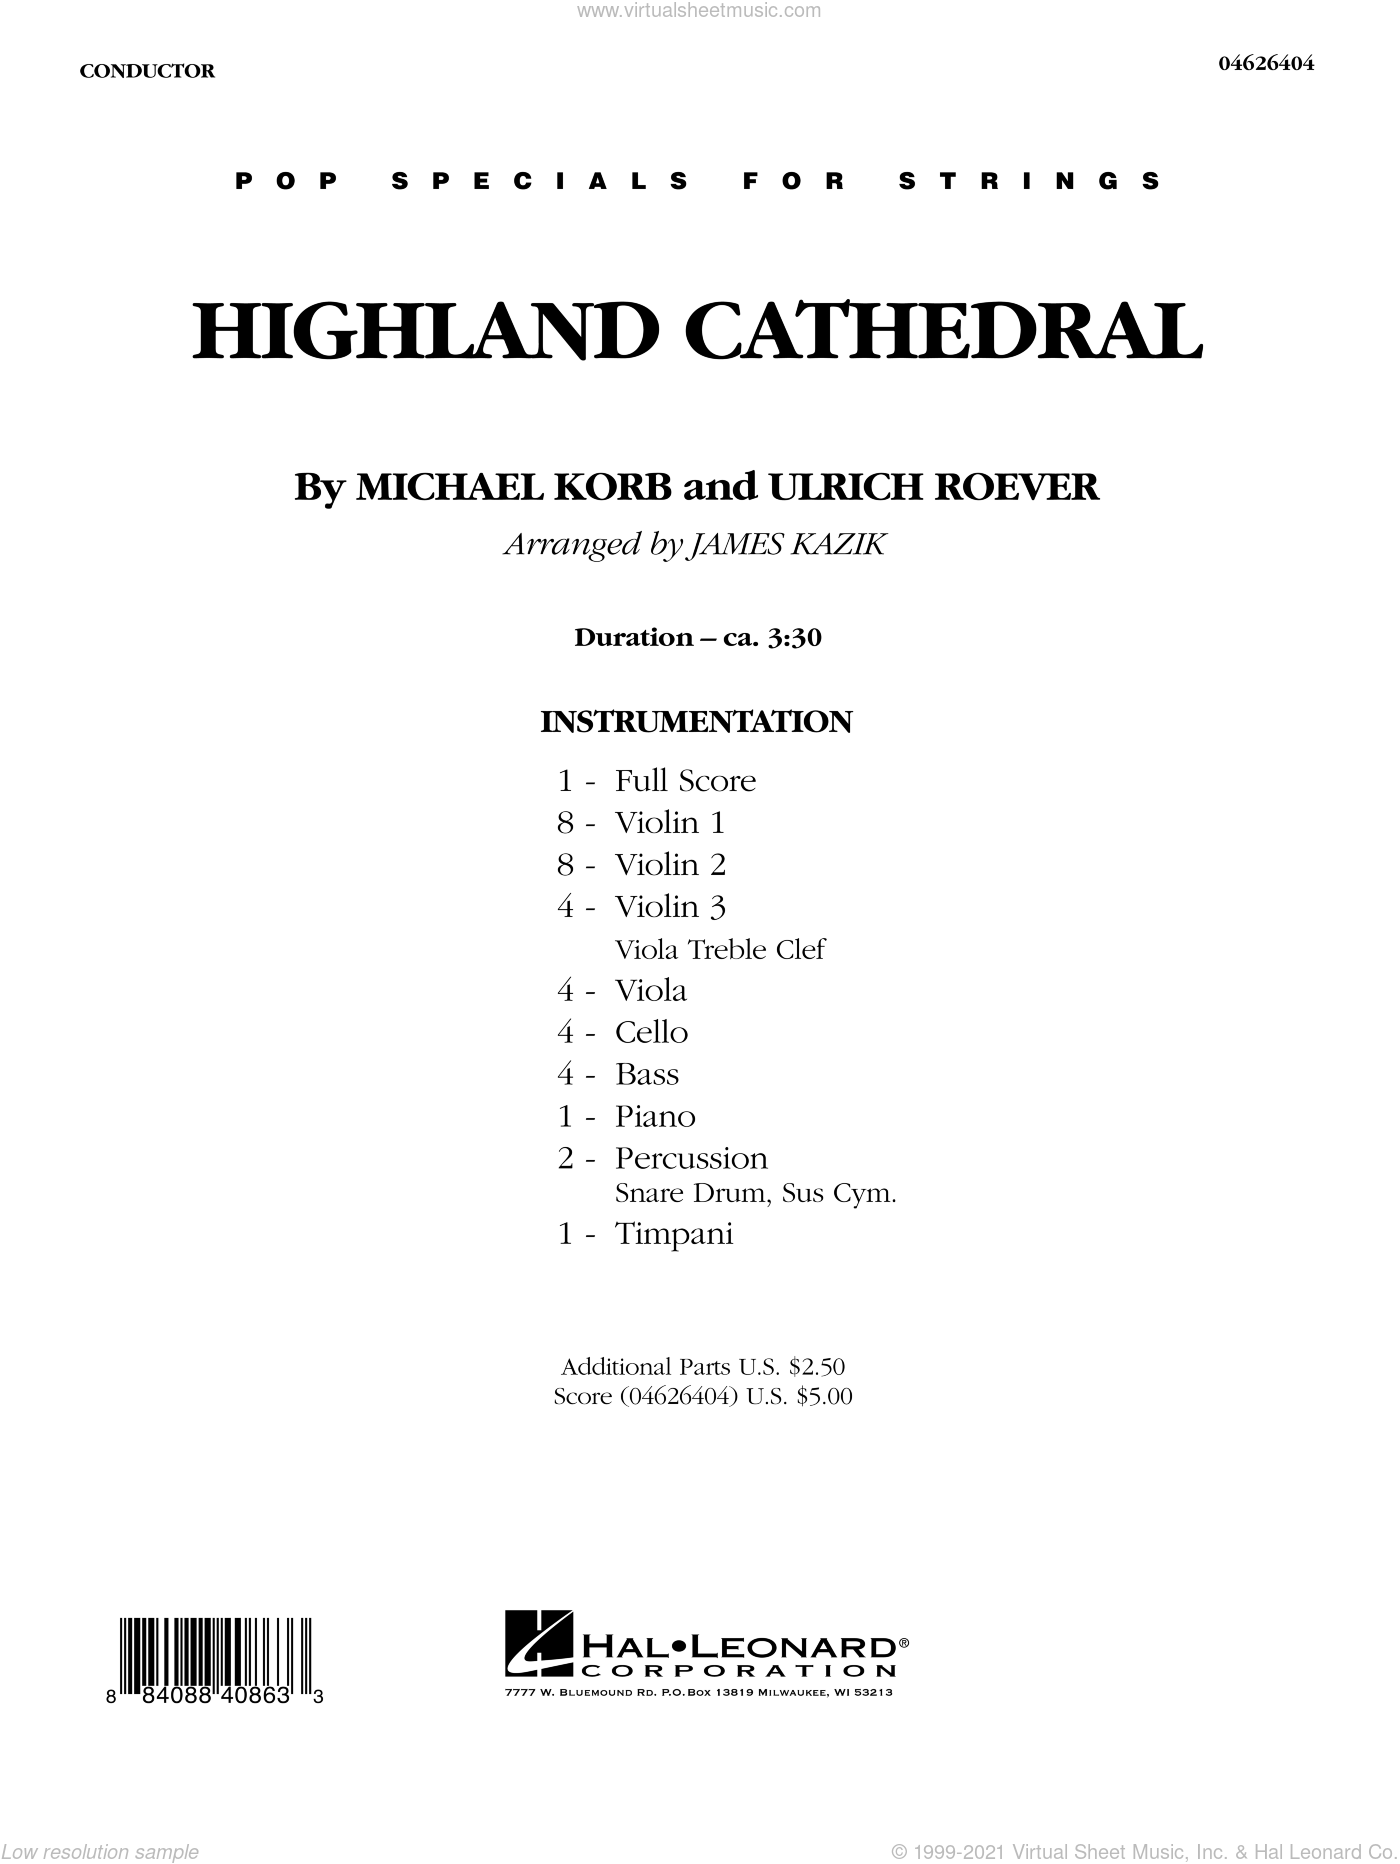 Highland Cathedral sheet music for orchestra (full score) by Michael Korb